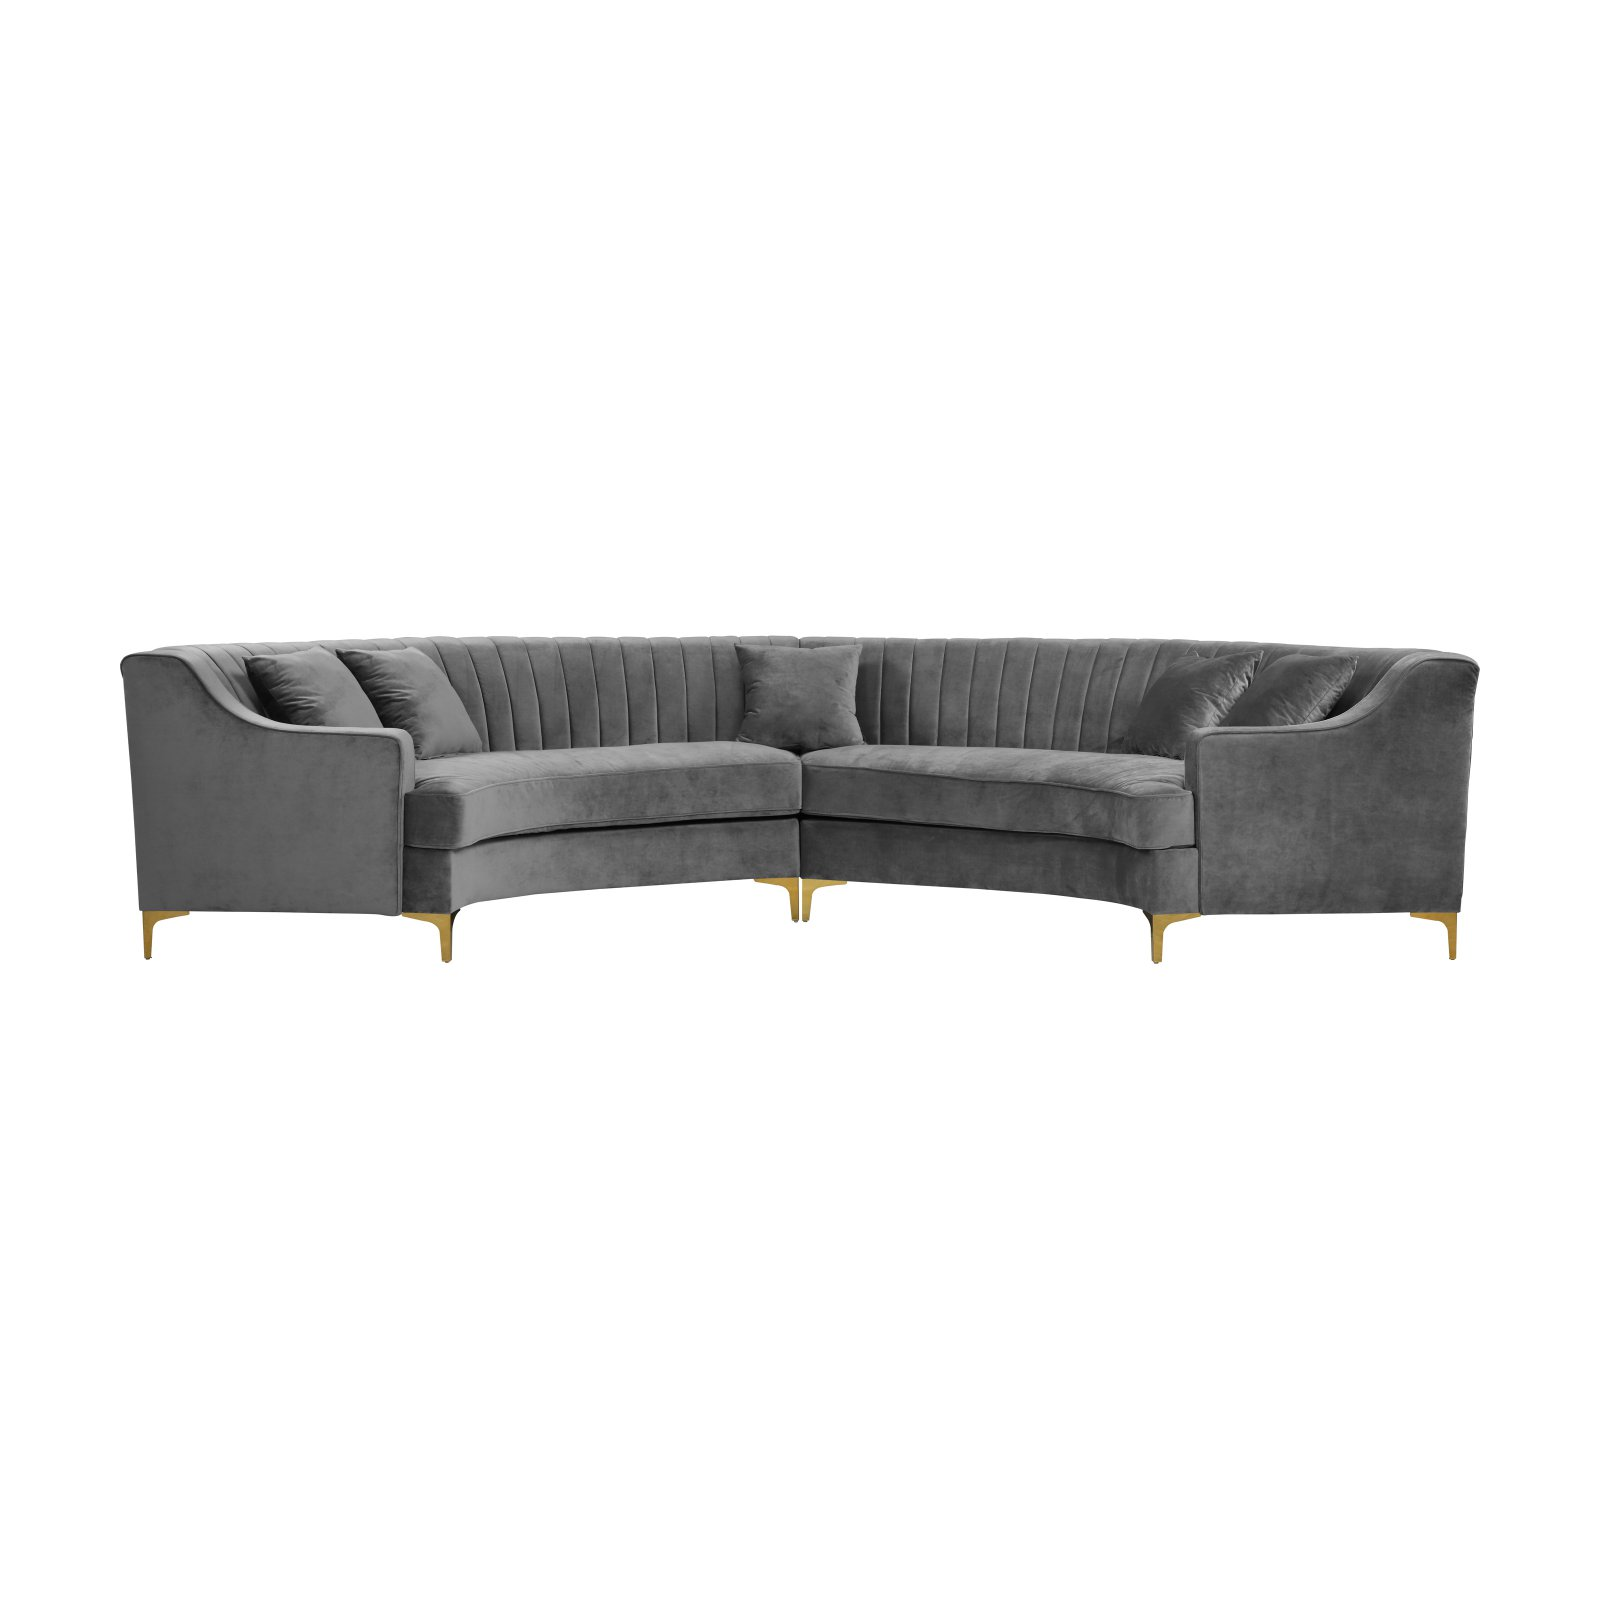 Meridian Furniture Inc Jackson Upholstered Sectional Sofa